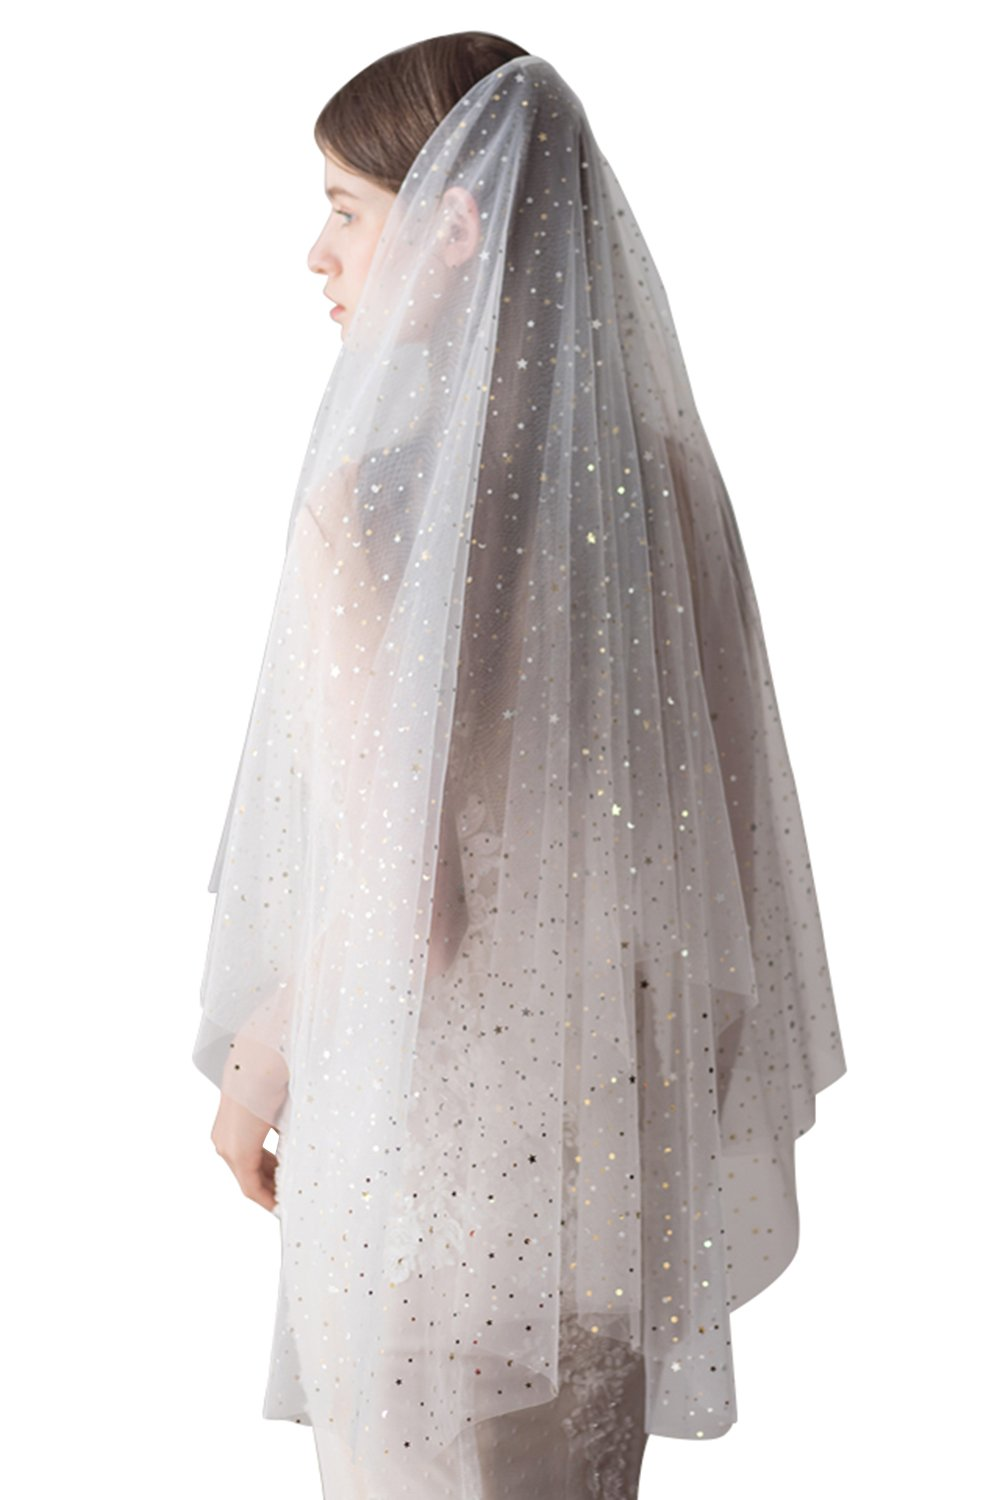 Women's 1 Layer Glitter Stars Sequins Bridal Veil Short Wedding Veil Ivory